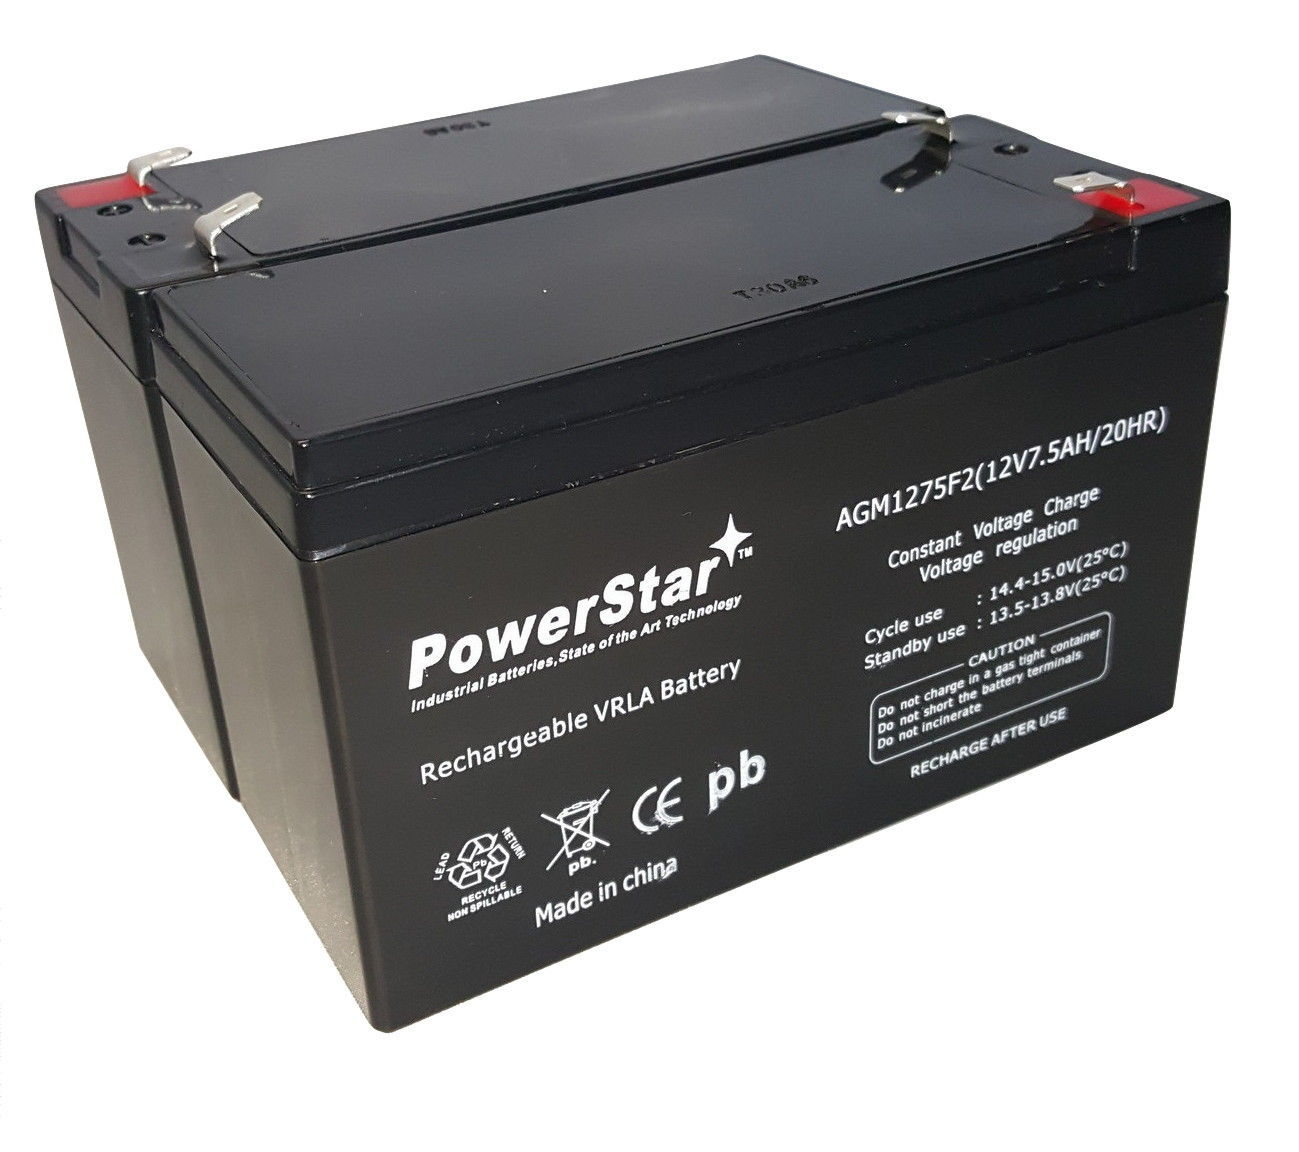 Primary image for 12V 7.5AH SLA Battery for APC RBC5 RBC9 RBC22 RBC32 RBC33